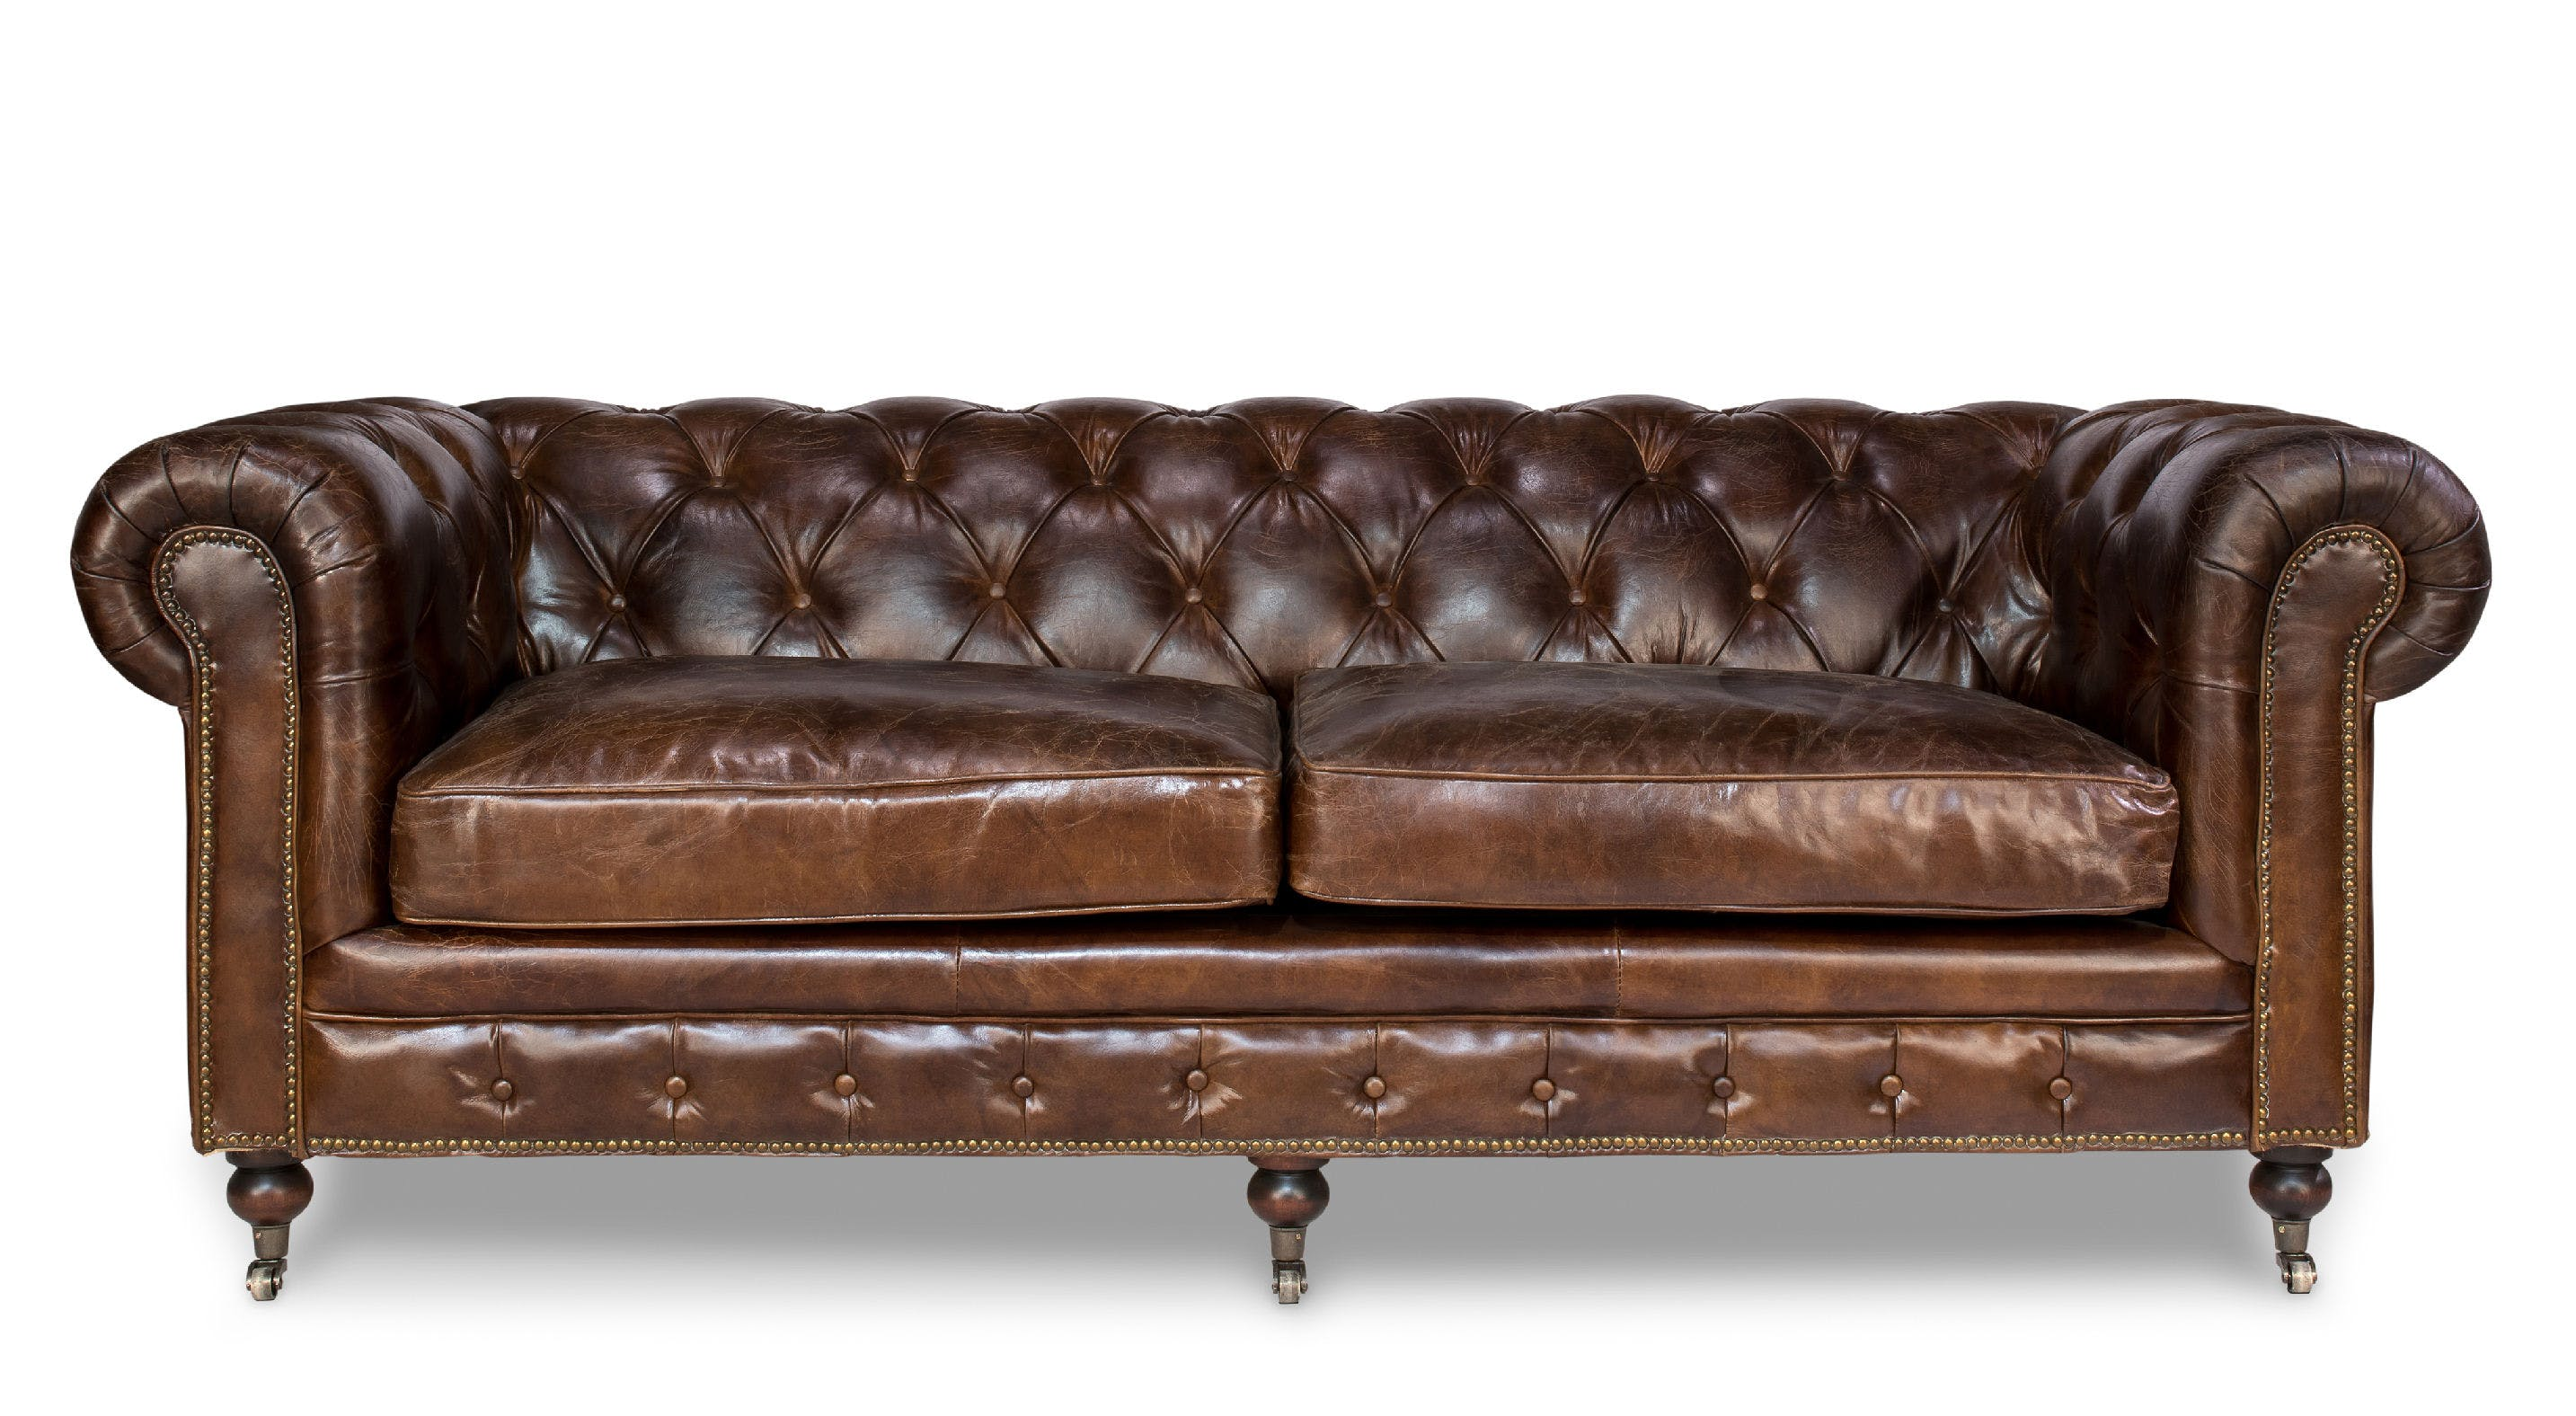 Castered Chesterfield Sofa SA29893